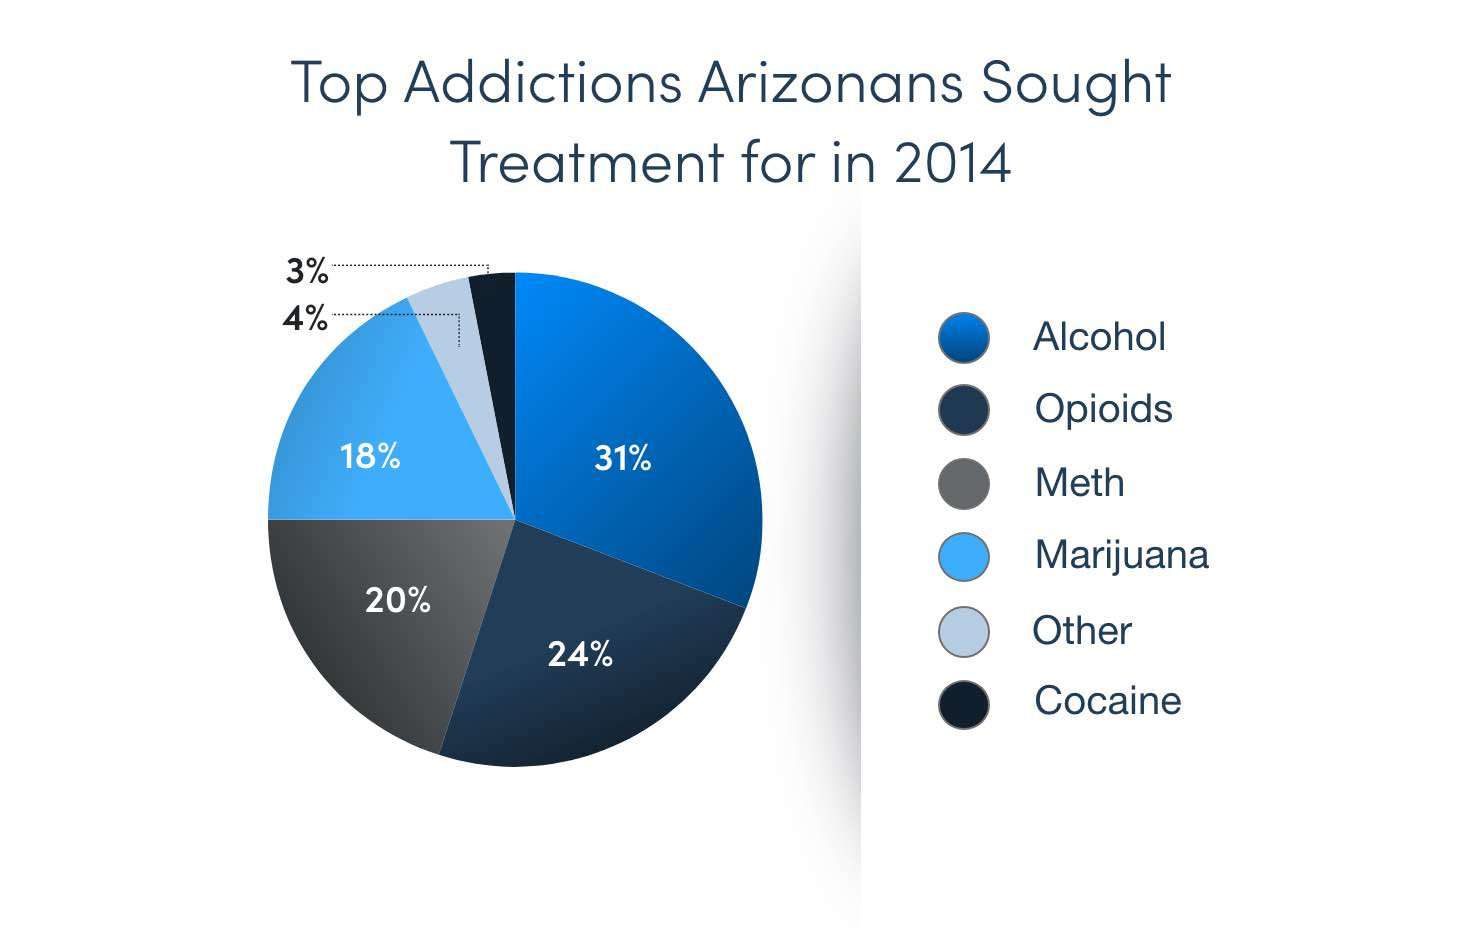 Top Addictions Arizonans Sought Rehab For In 2014